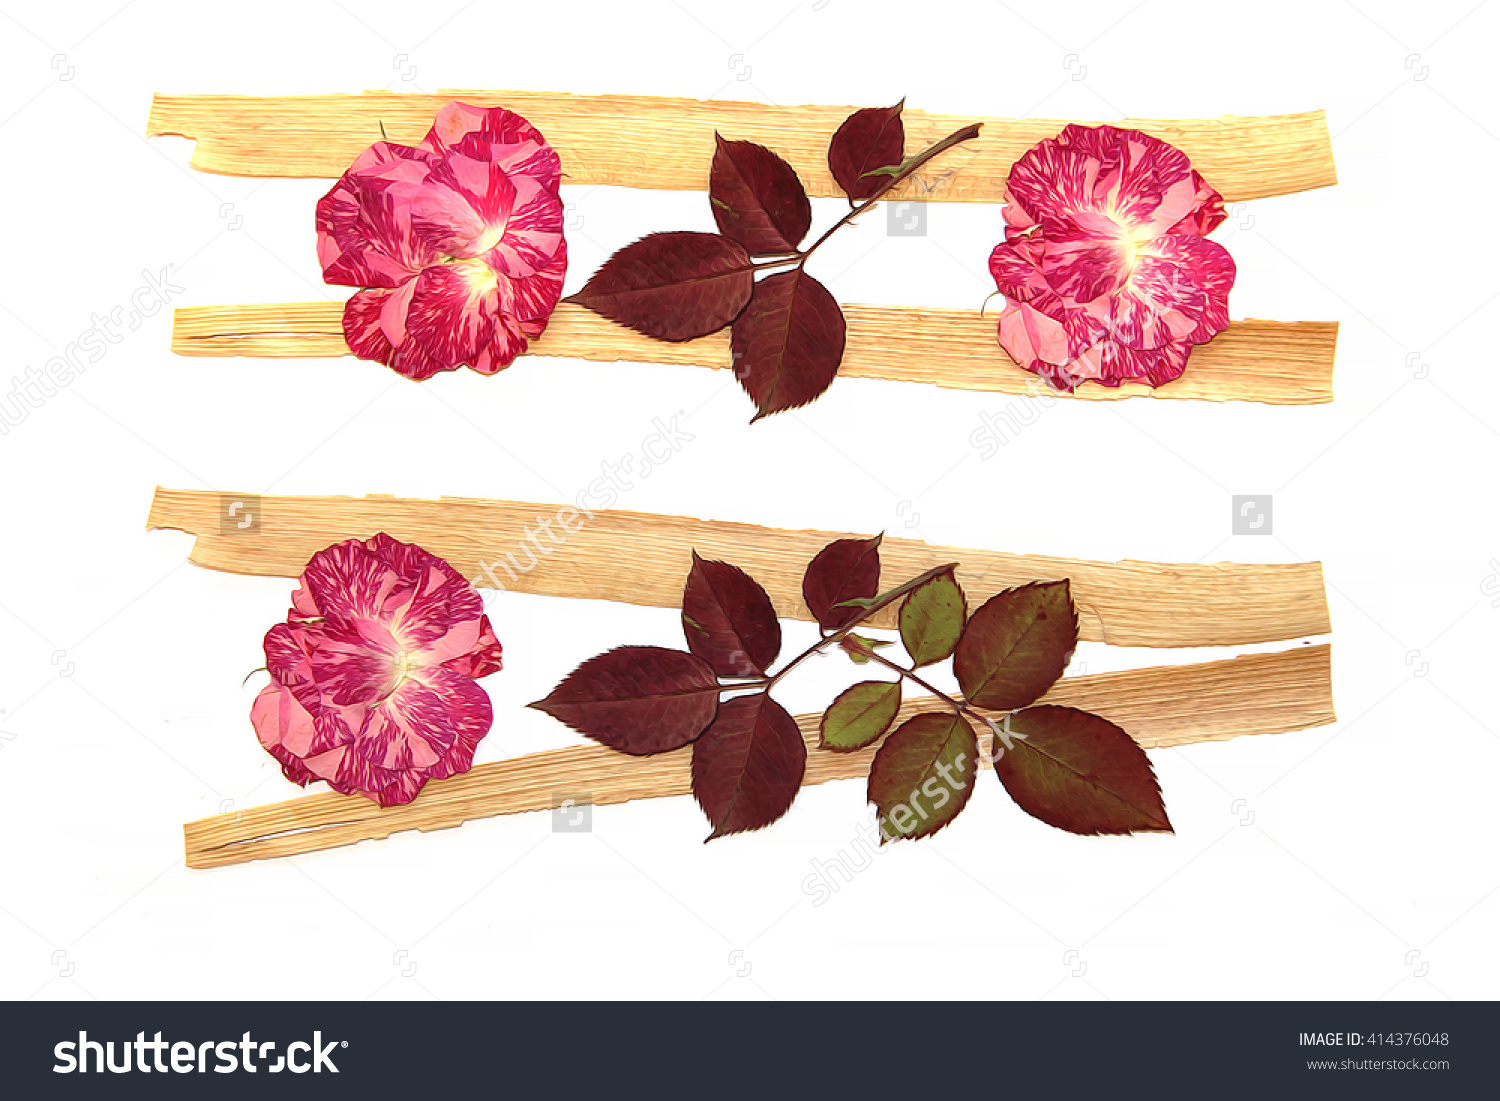 Oil Draw Rose, Draw Of Dry Fall Dry Flowers Oil Paint Isolated.